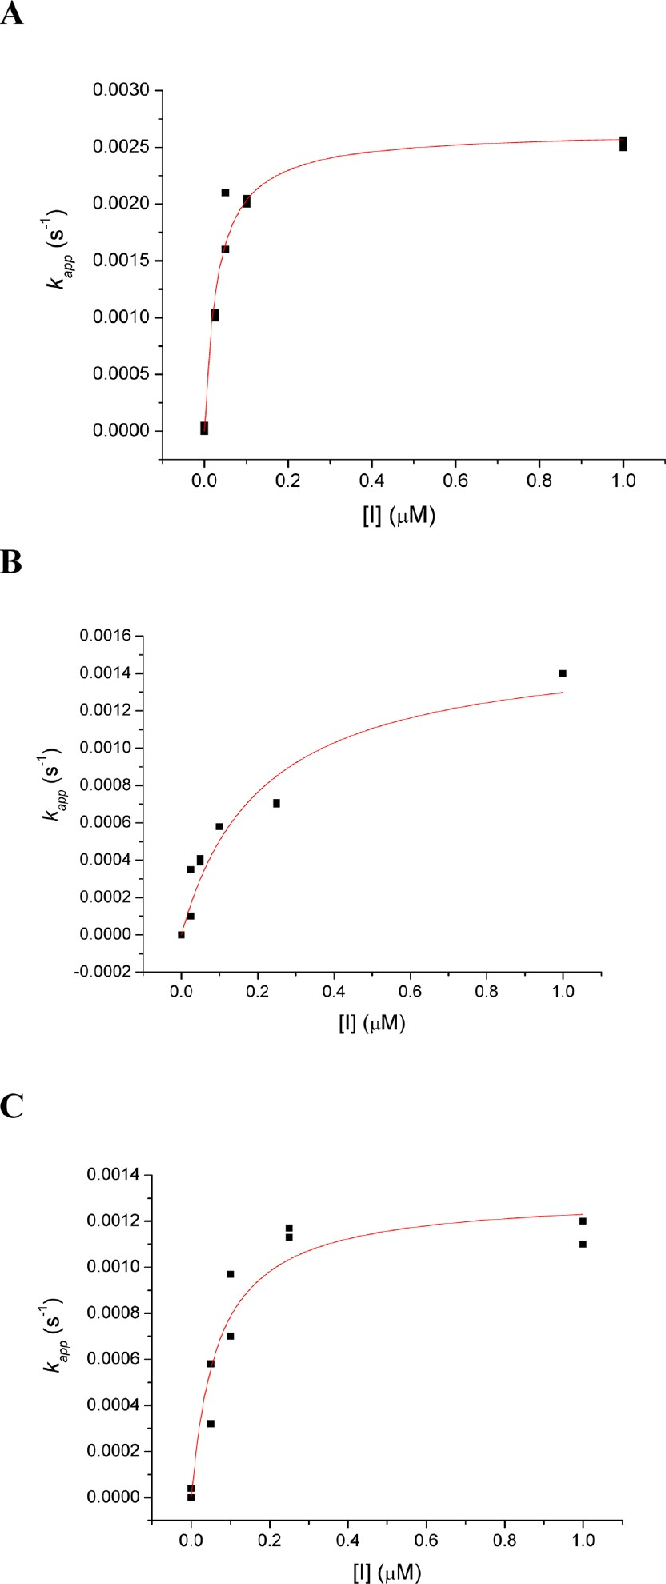 Figure 4. Nonlinear least-squares curve fittings of kapp vs inhibitor concentration ([I]) plots against eq 1 for the pseudo substrate inhibition of AChE by 1,3,5-tri-N-n-octylcarbamylphloroglucinol (1) (A), 3,5-di-N-n-hexylcarbamyloxy-phenol (7) (B), and 5-N-n-heptylcarbamyloxyresorcinol (10) (C). For A, k2 = 0.0027 ± 0.0001 s −1 and Ki = 15 ± 3 nM (R 2 = 0.96458). For B, k2 = 0.0016 ± 0.0002 s −1 and Ki = 110 ± 40 nM (R 2 = 0.91316). For C, k2 = 0.0018 ± 0.0002 s −1 and Ki = 60 ± 20 nM (R 2 = 0.92569).